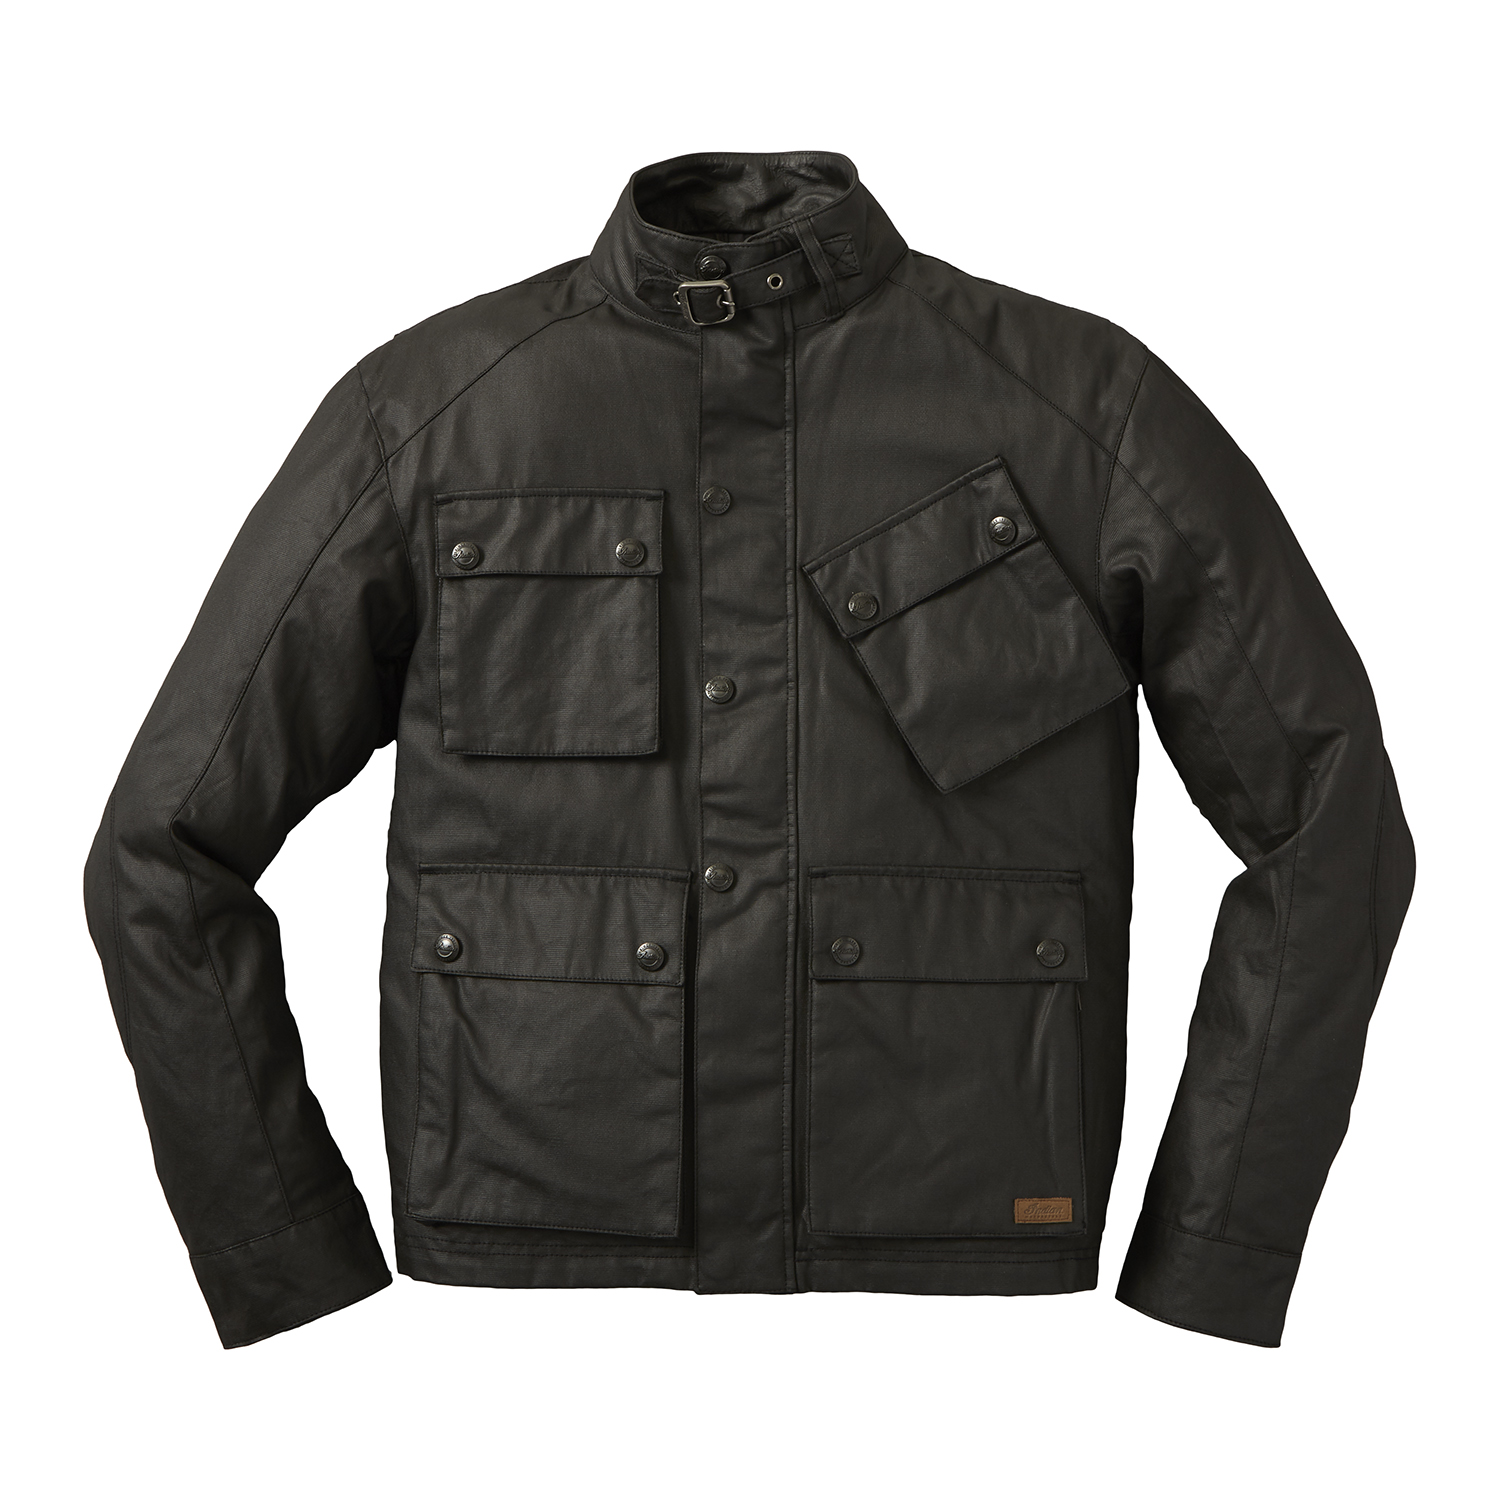 Men's Casual Coated Canvas Lexington Jacket, Black